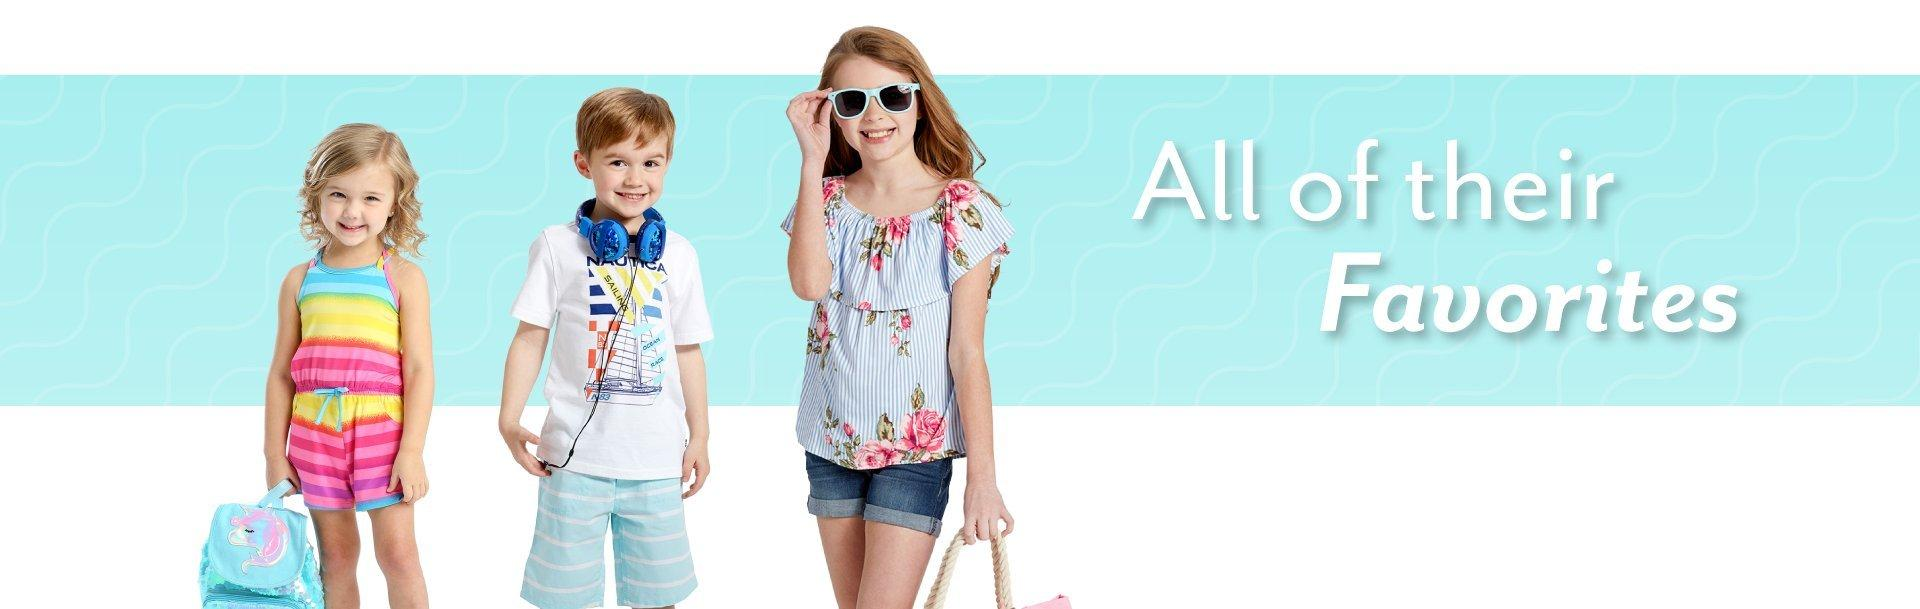 e522b83a4 Kids' Clothes, Baby Clothes, Toys | Burkes Outlet